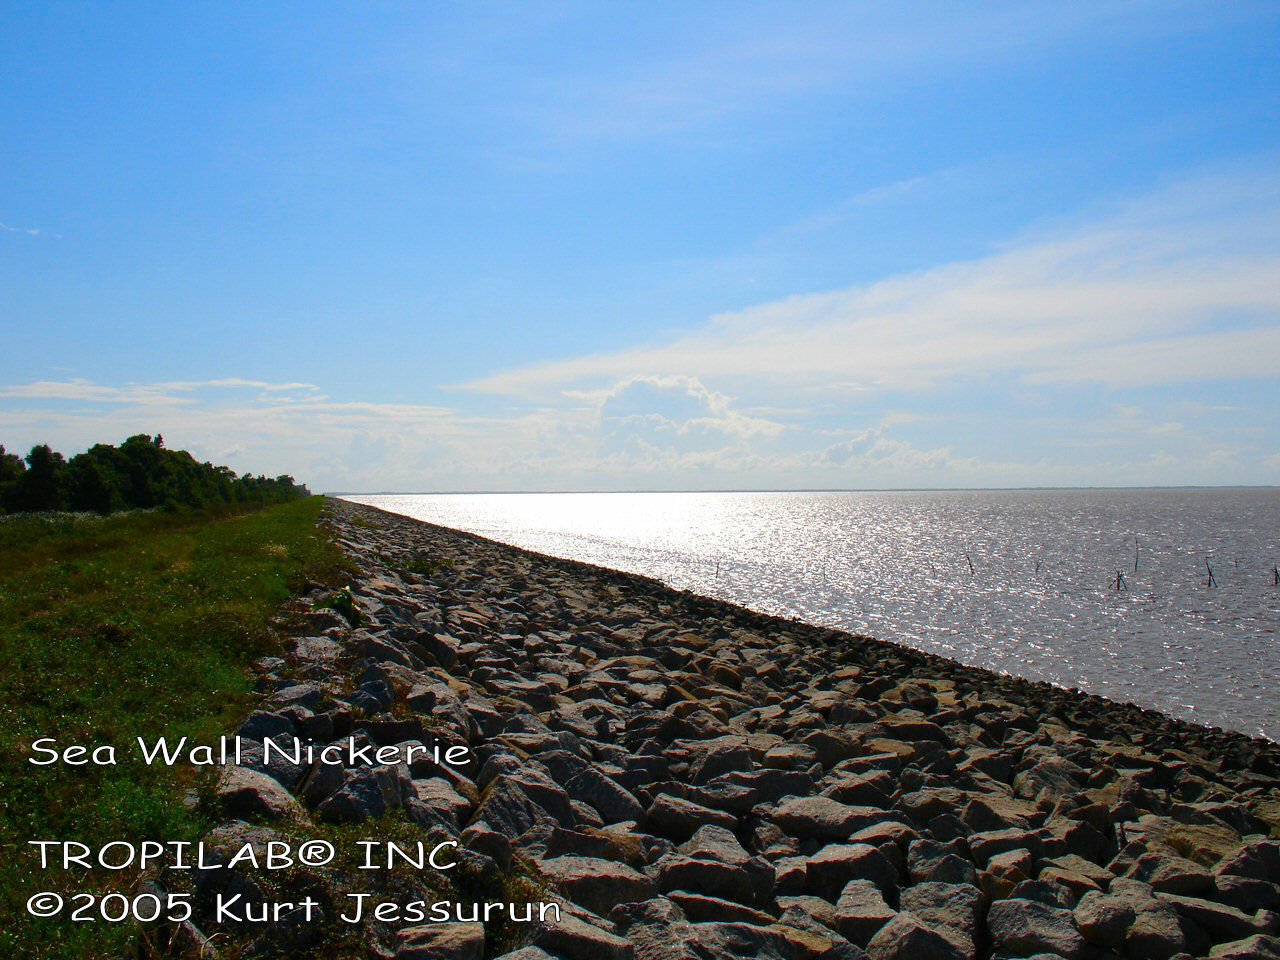 Sea wall Nickerie